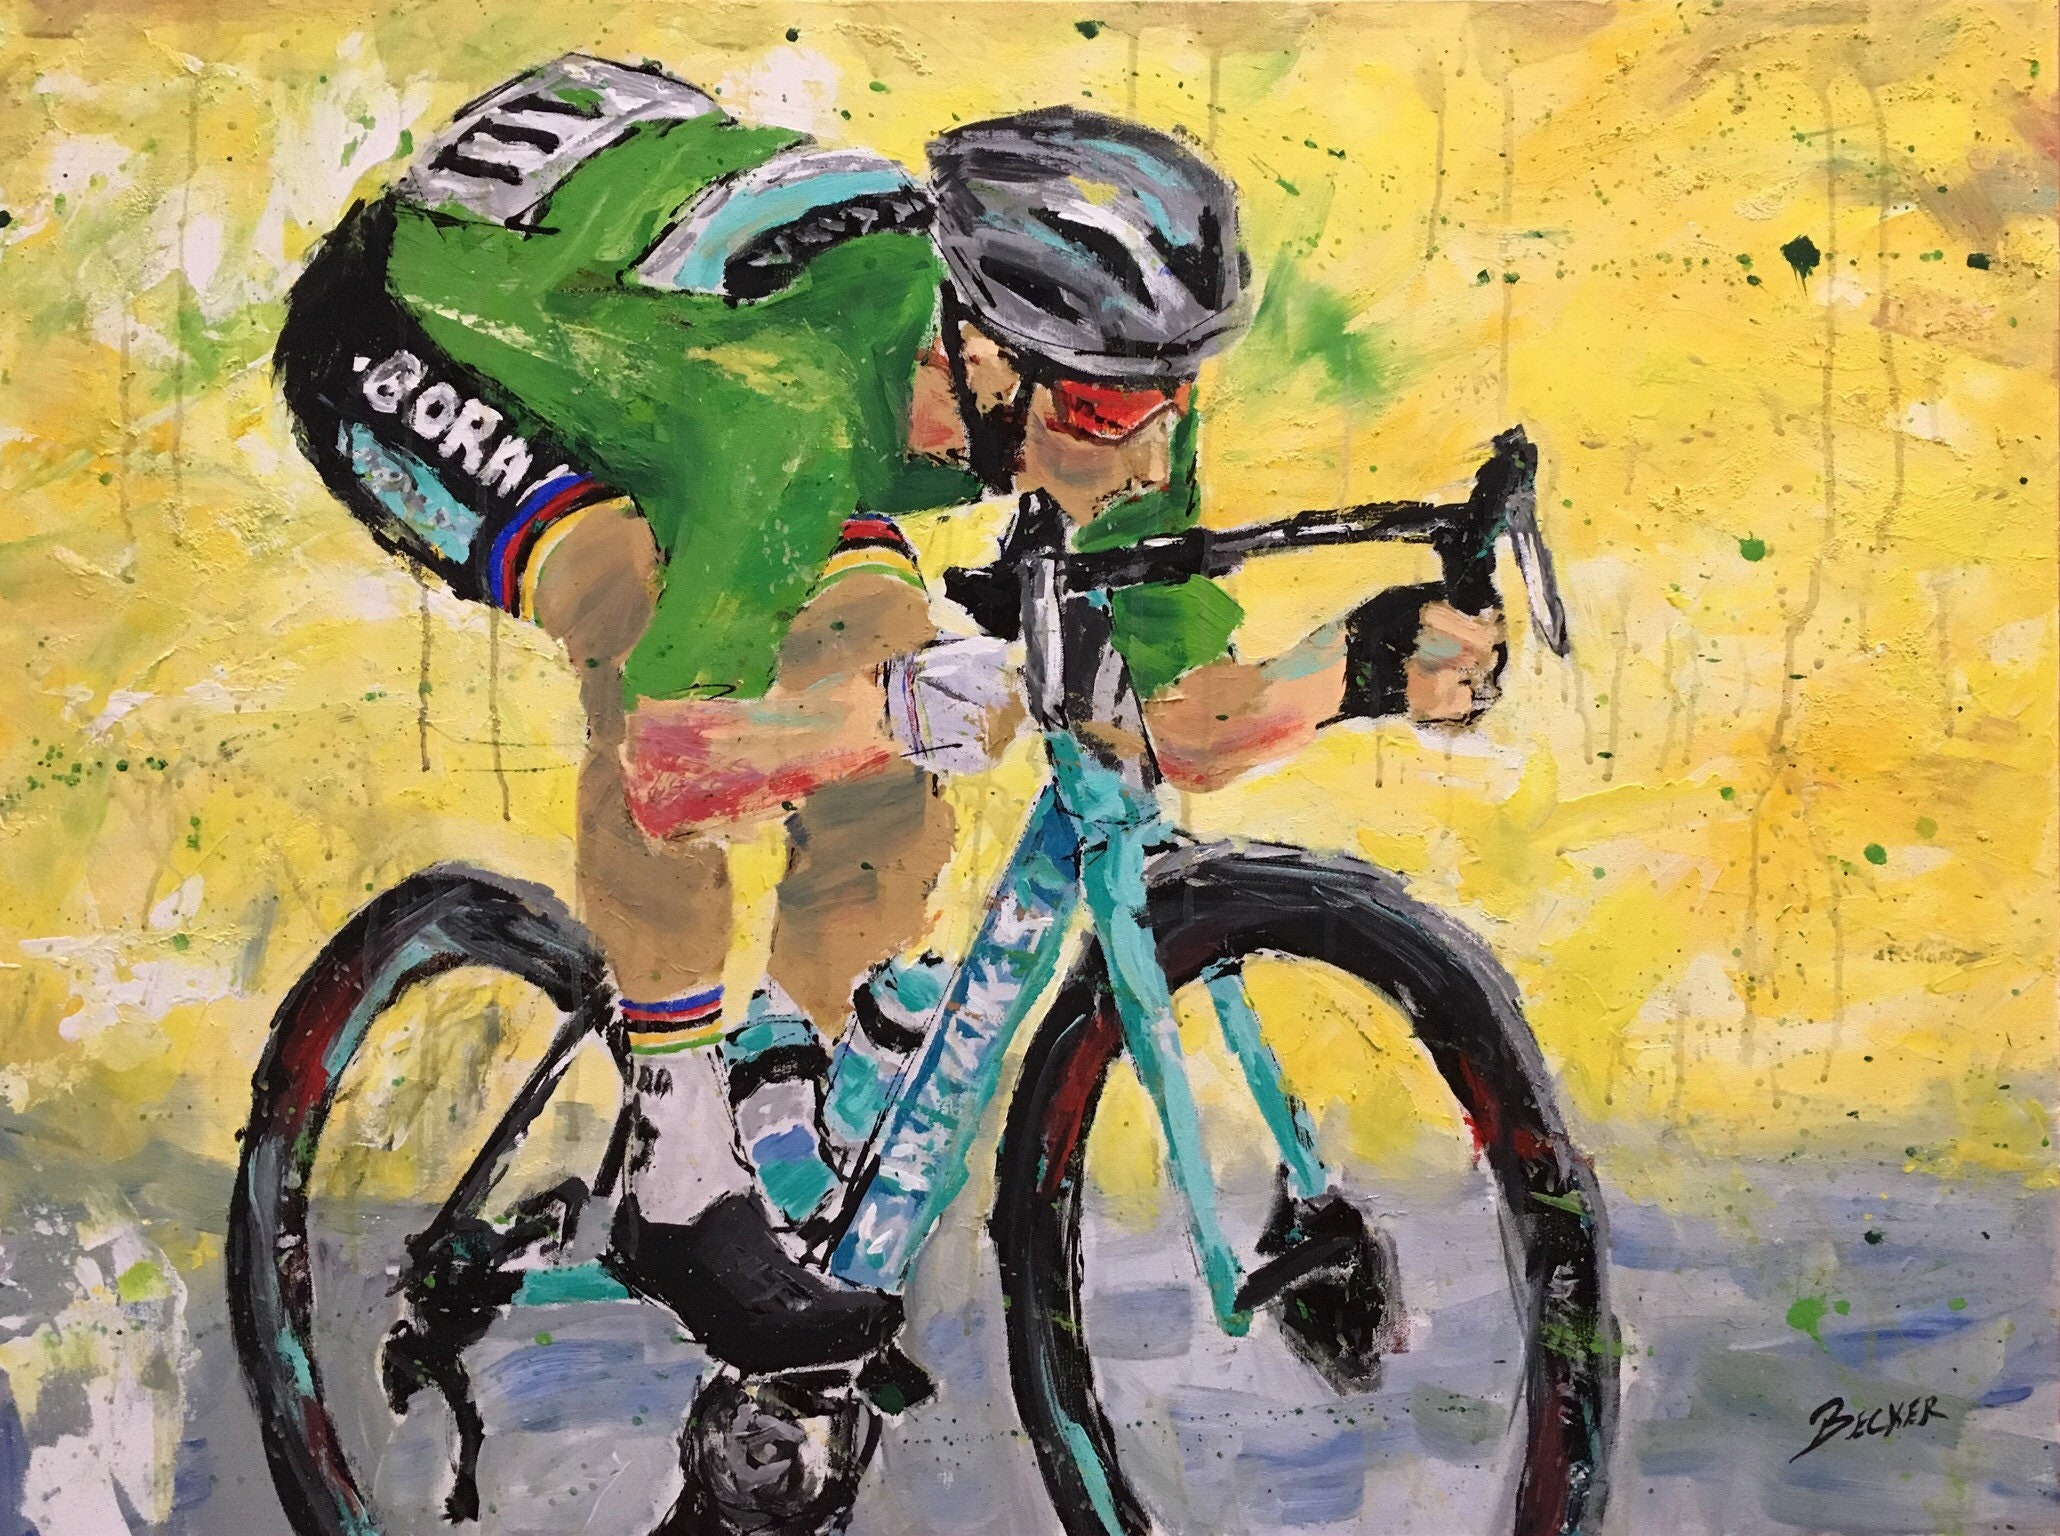 56eb75d86 Peter Sagan in the Green Jersey | Etsy